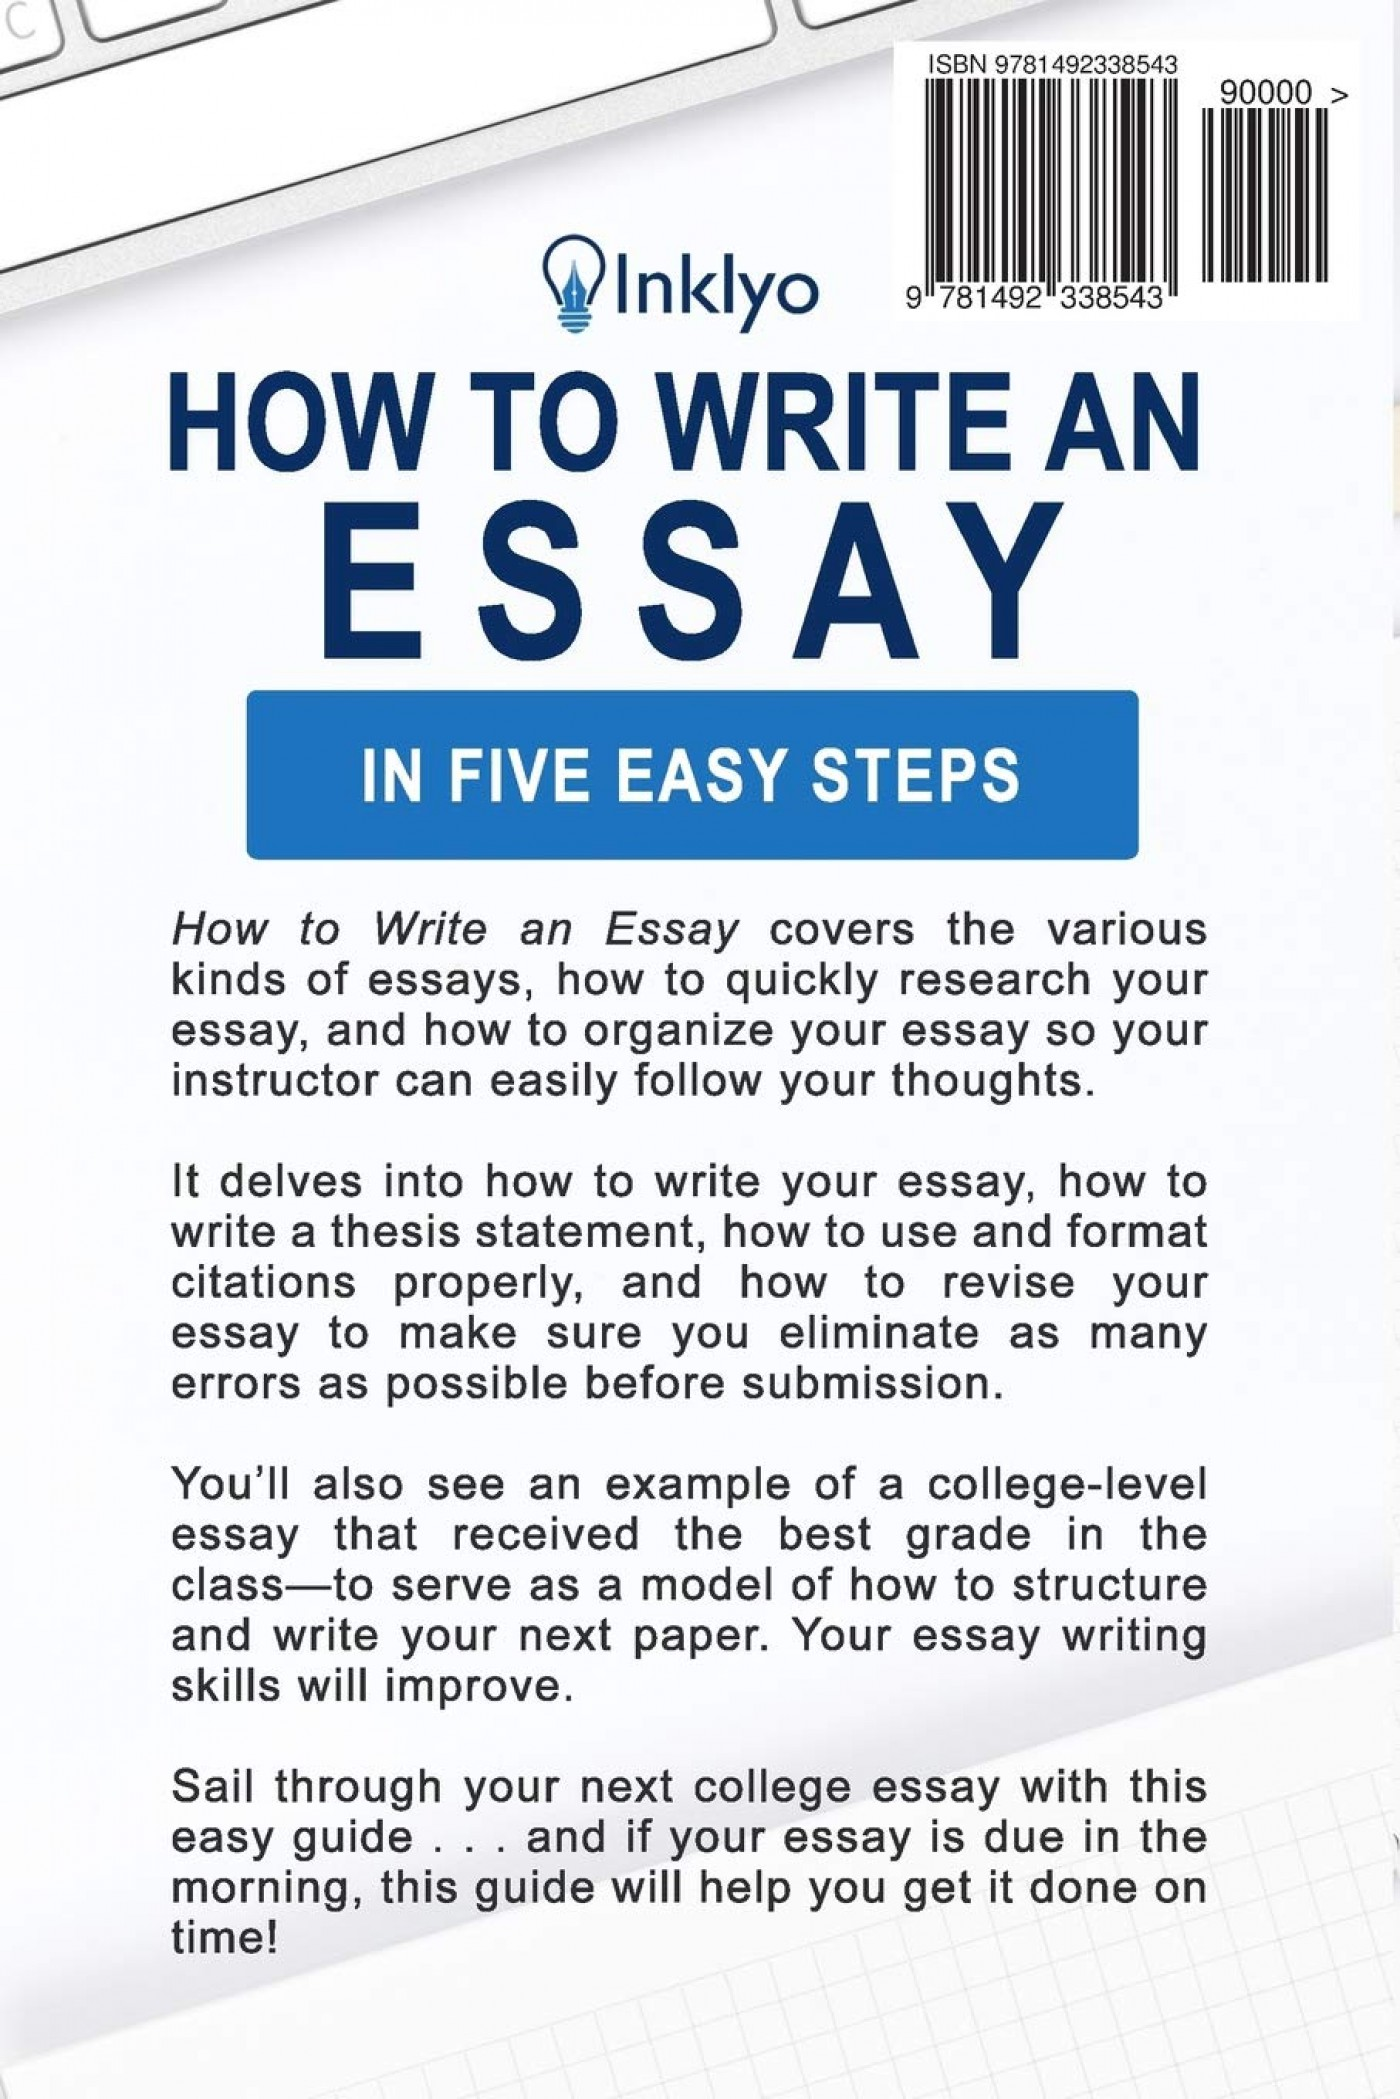 001 Essay Example Writing Breathtaking App Topics For High School Students Apk 1400